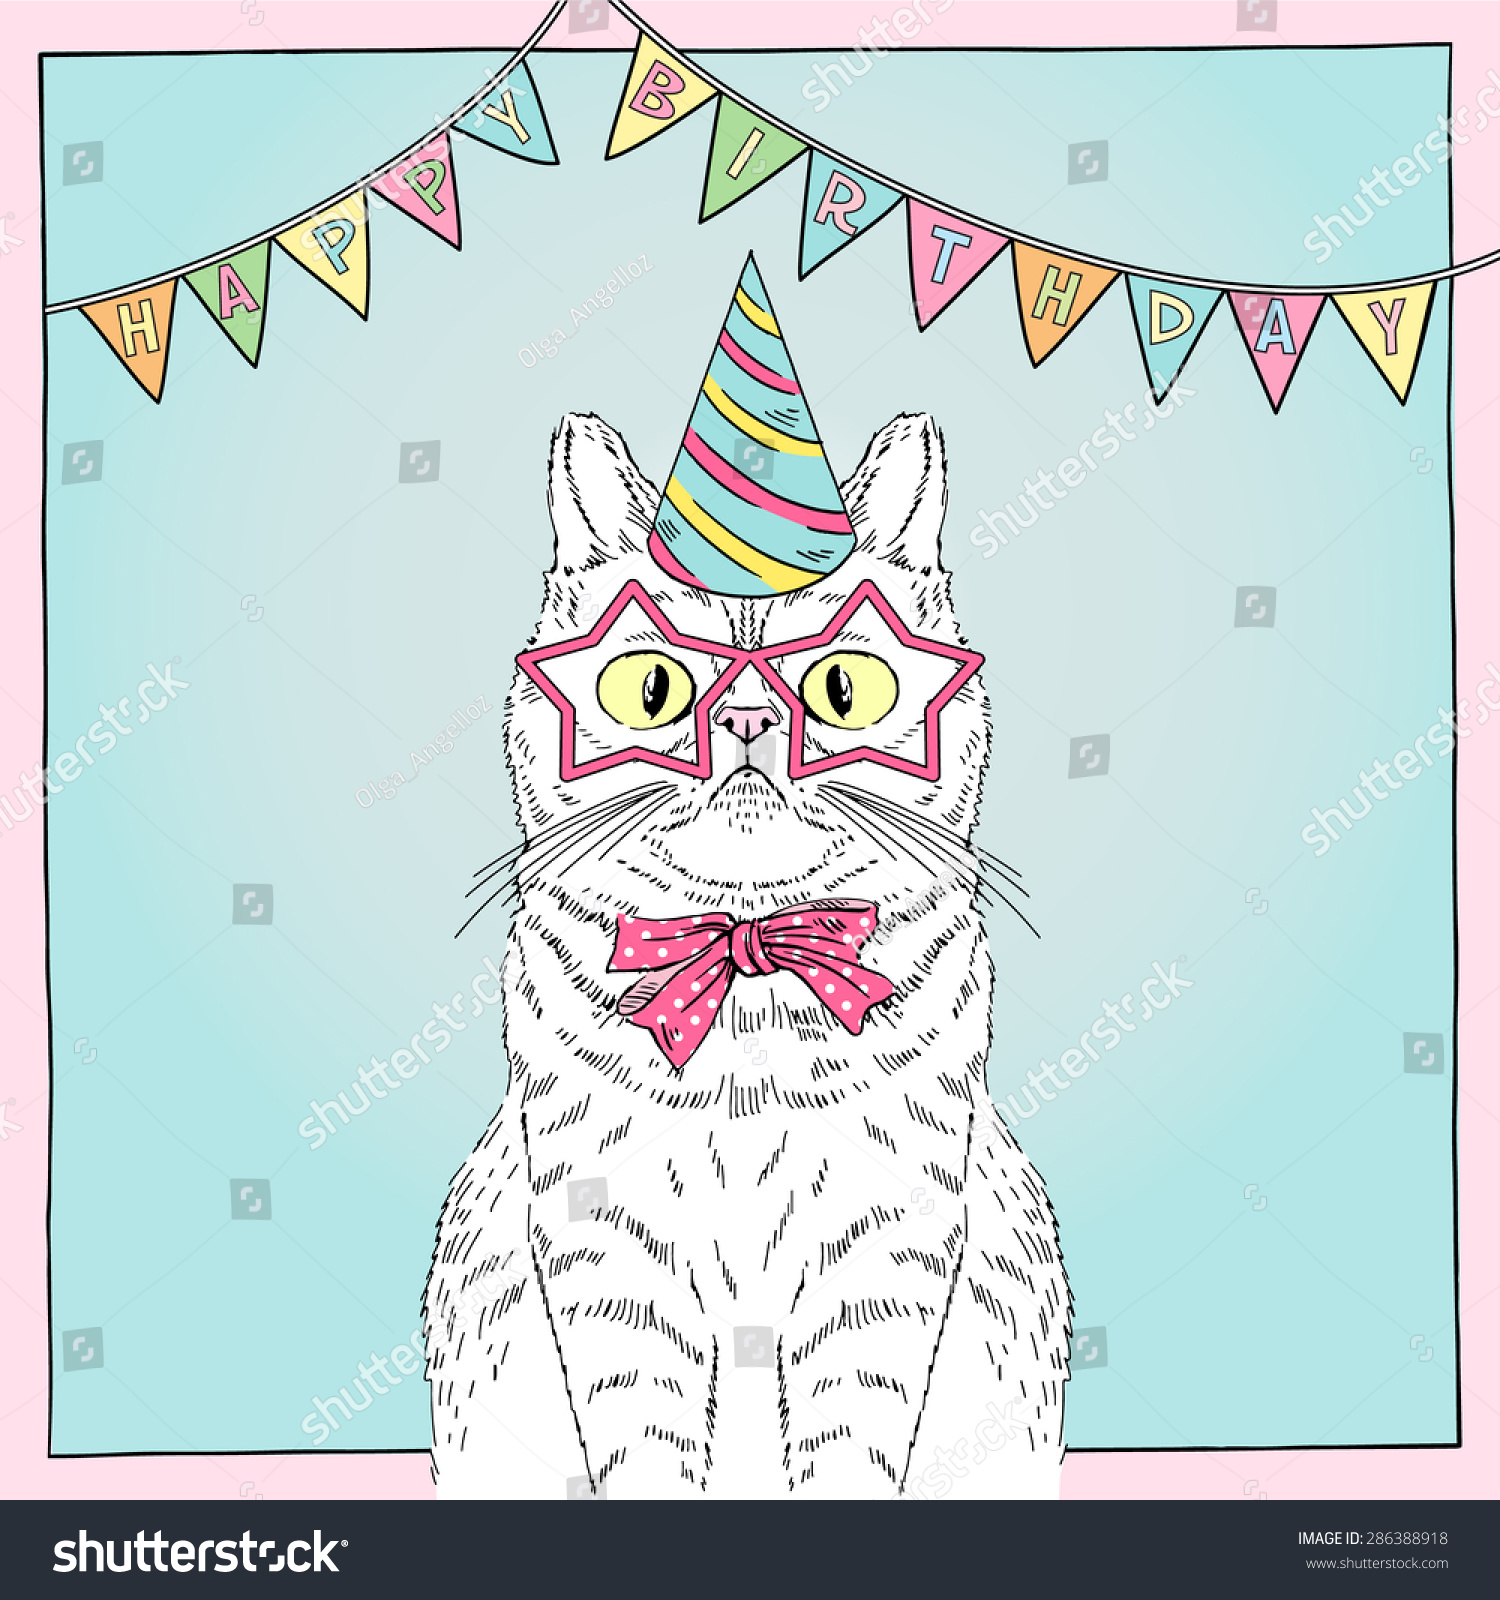 Hand Drawn Happy Birthday Card With Funny Cat Greeting Art Congratulatory Design